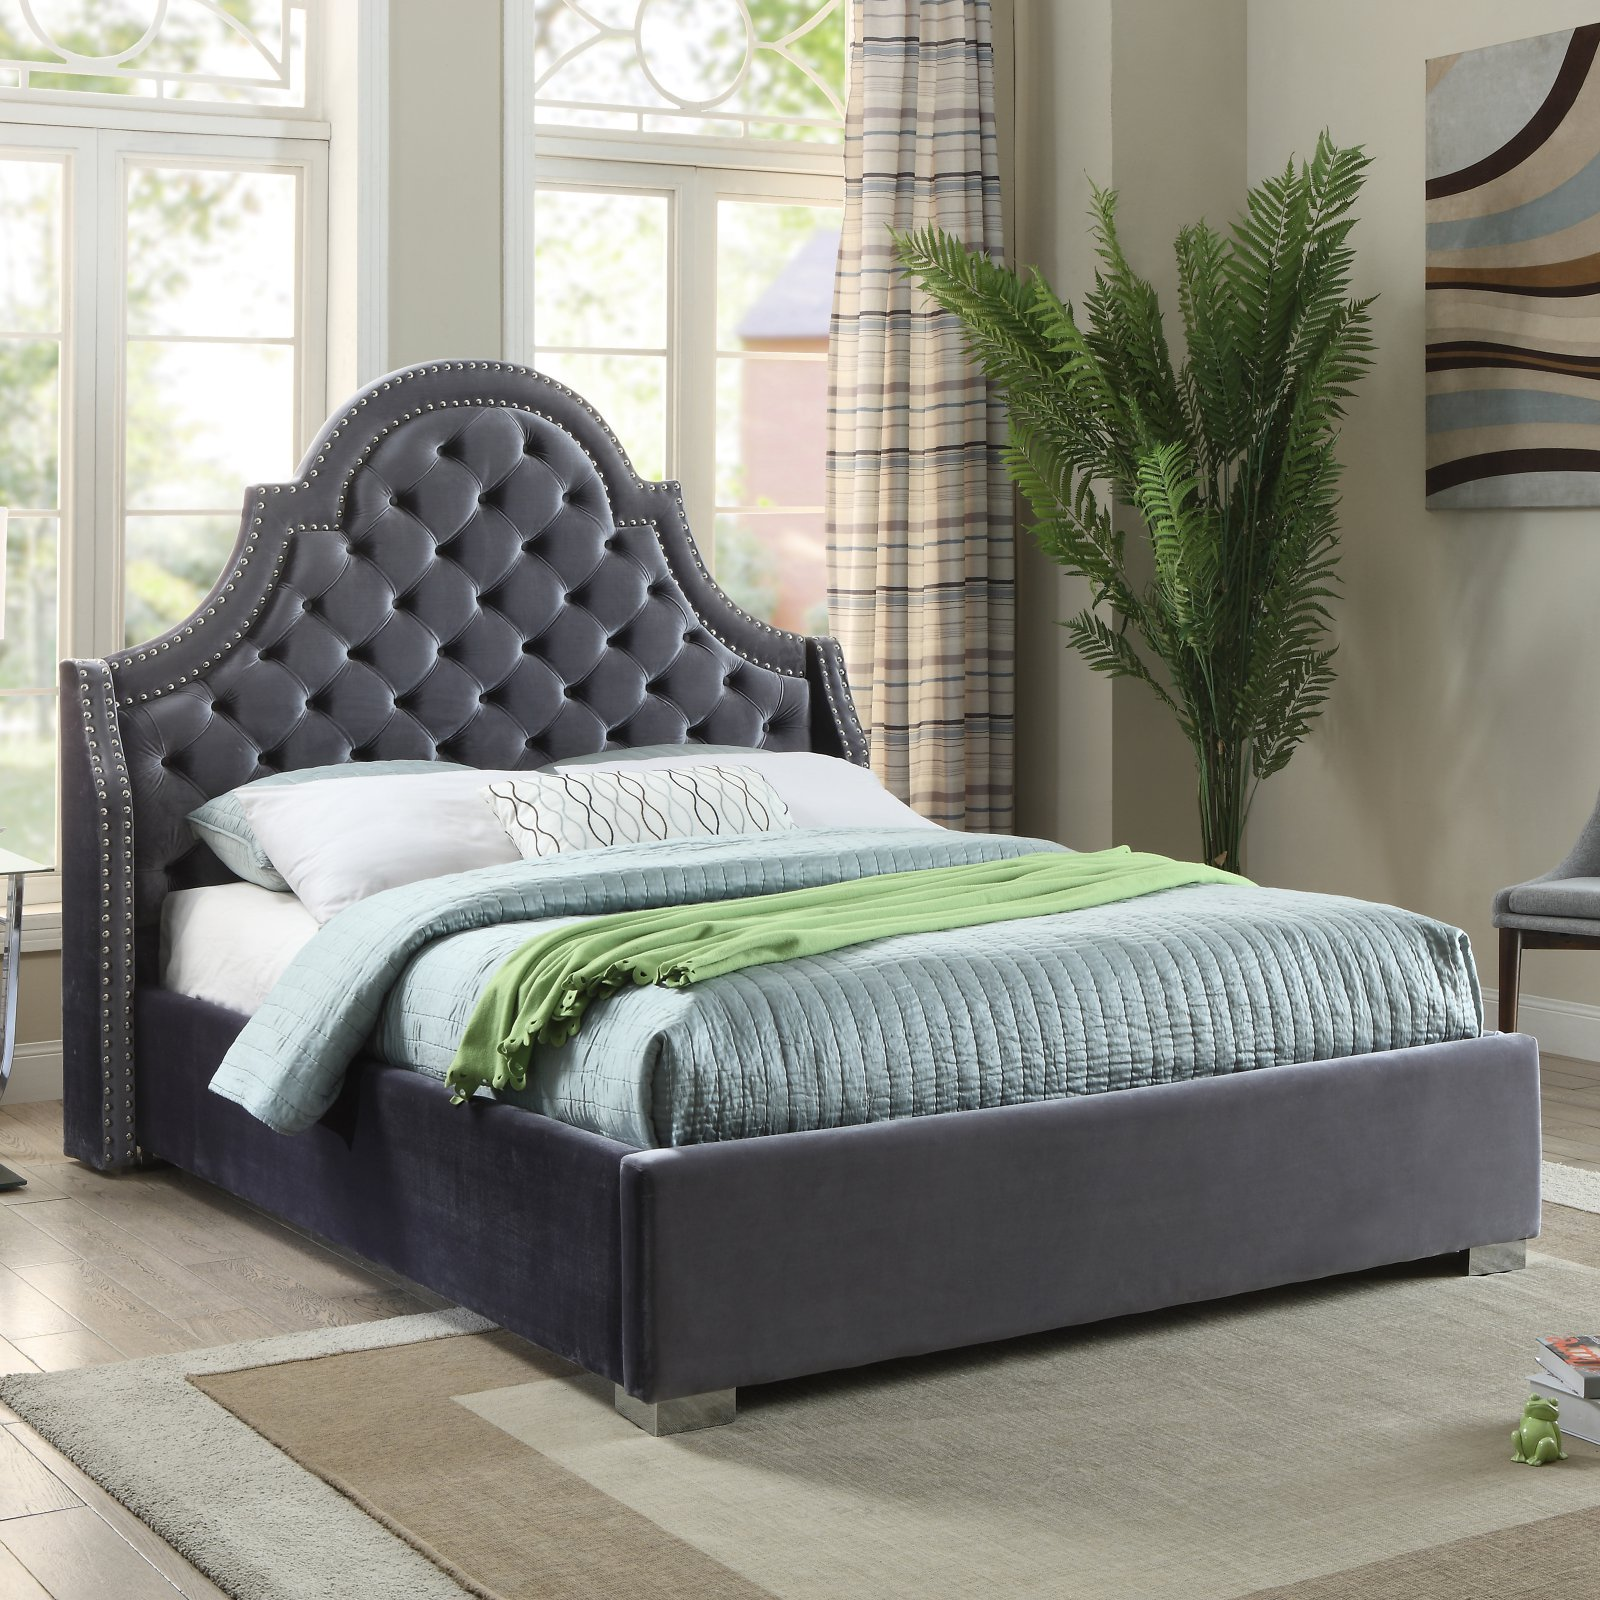 Meridian Madison Tufted Upholstered Platform Bed